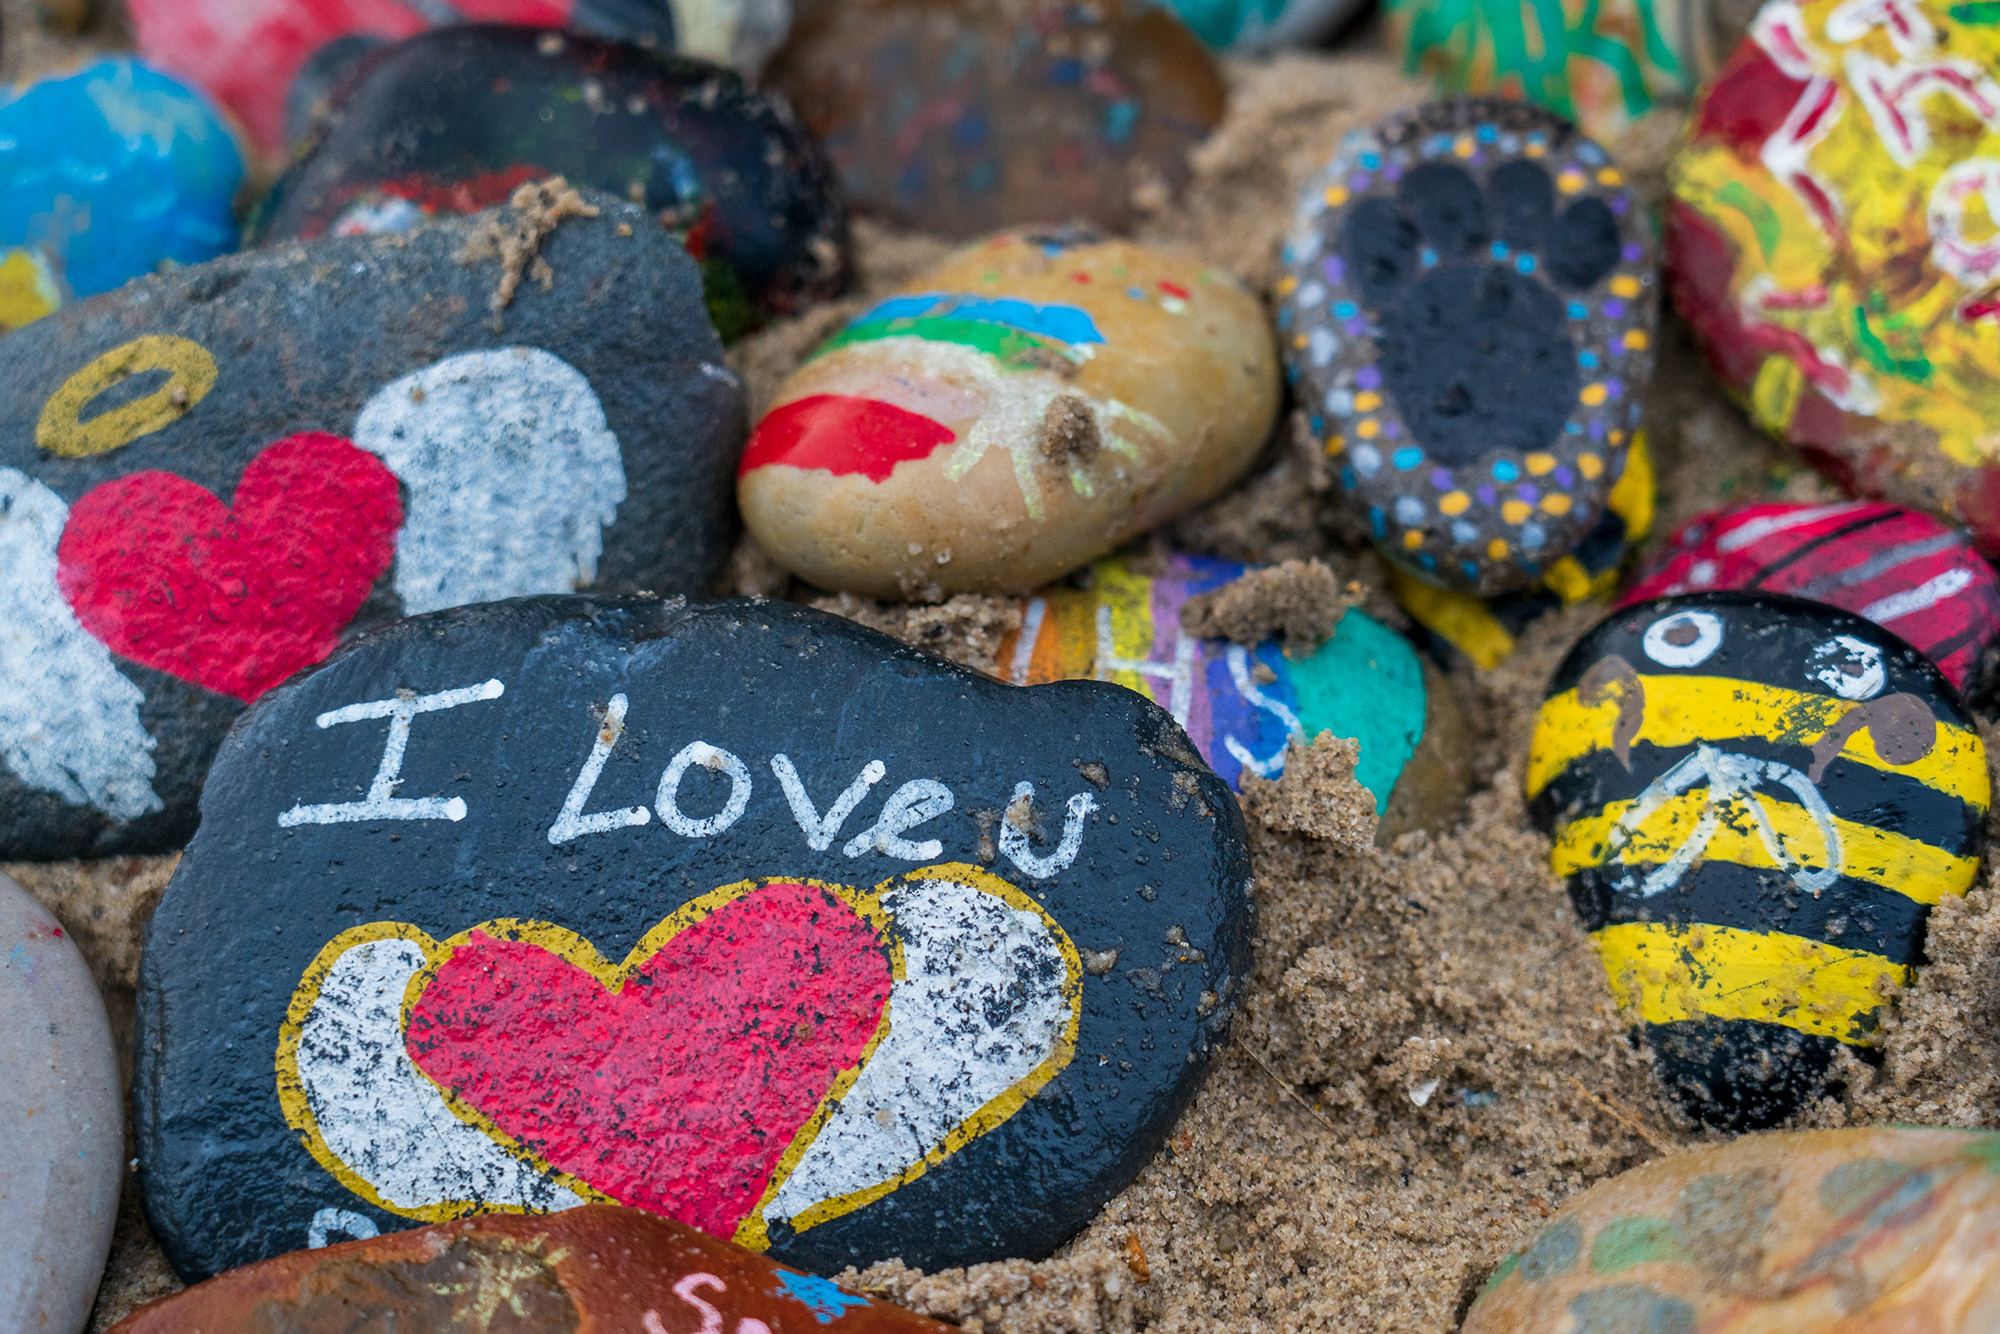 Painted Rocks on the ground